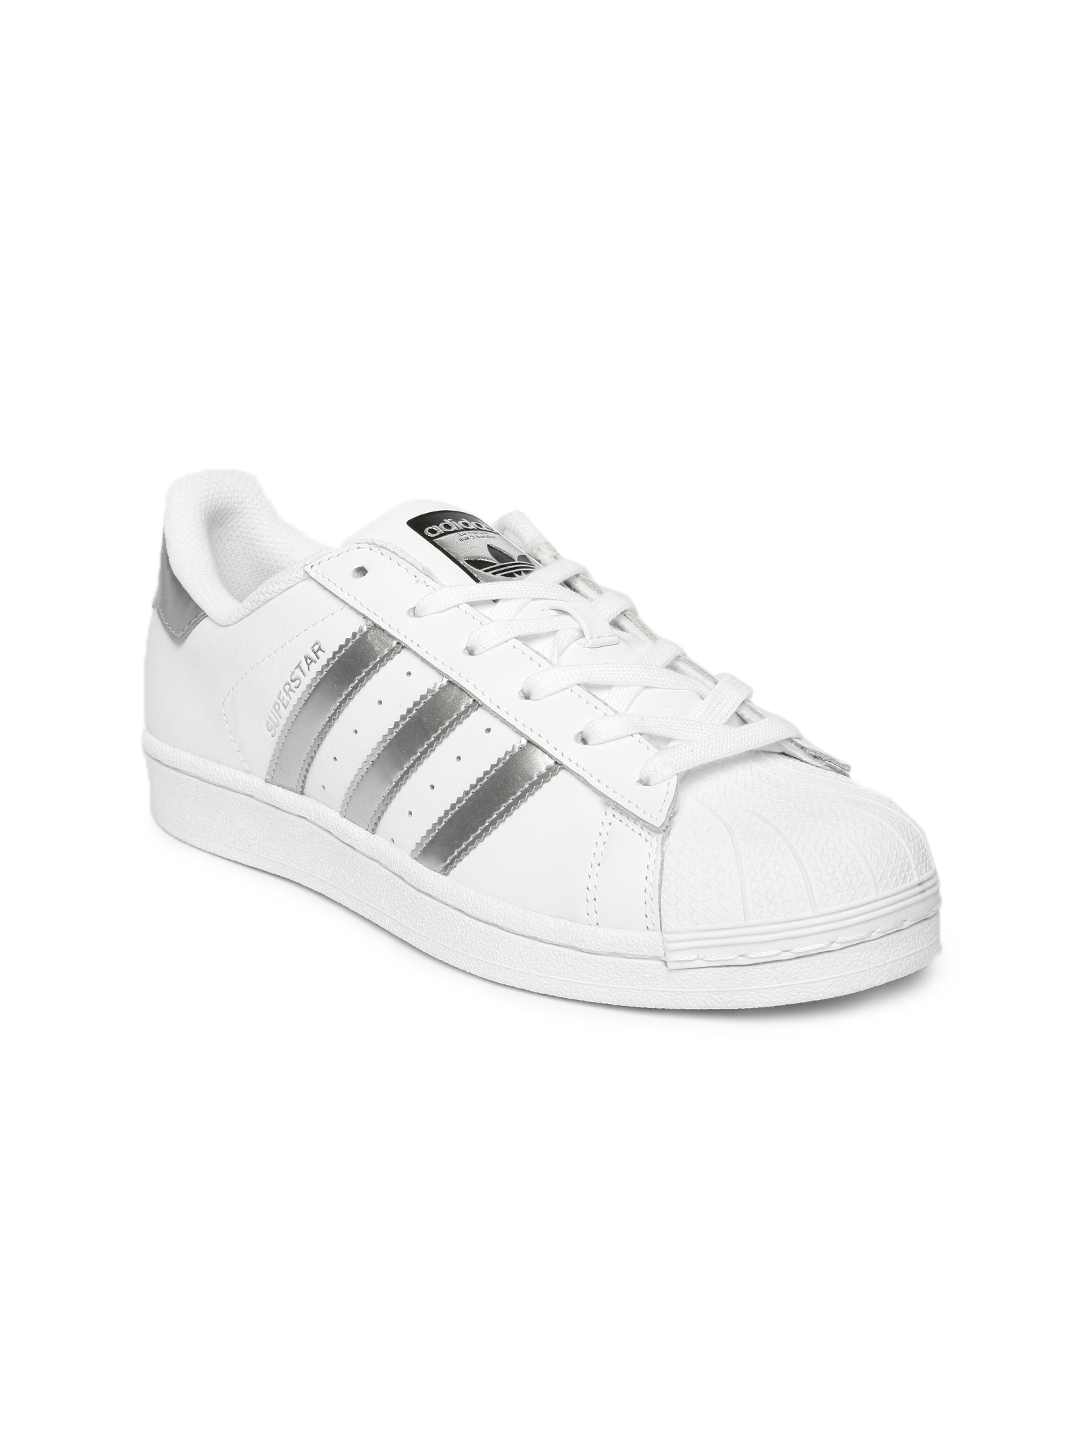 pretty nice 4d4f2 bc5e3 ADIDAS Originals Women White Superstar Leather Sneakers